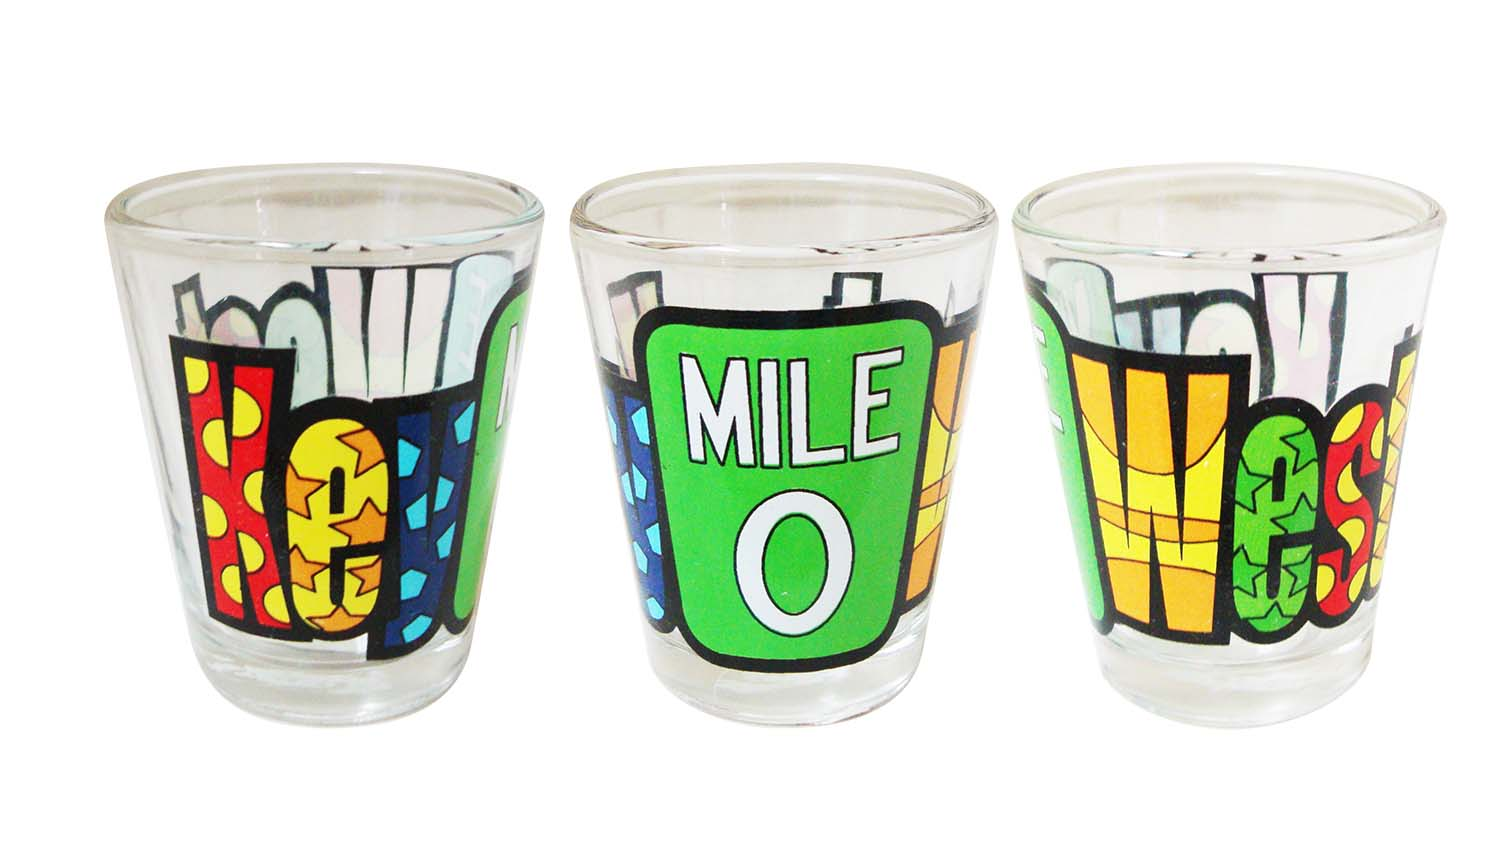 Shot Glass-KEY WEST MILE ZERO - UOM: DZ - Minimum Order:1